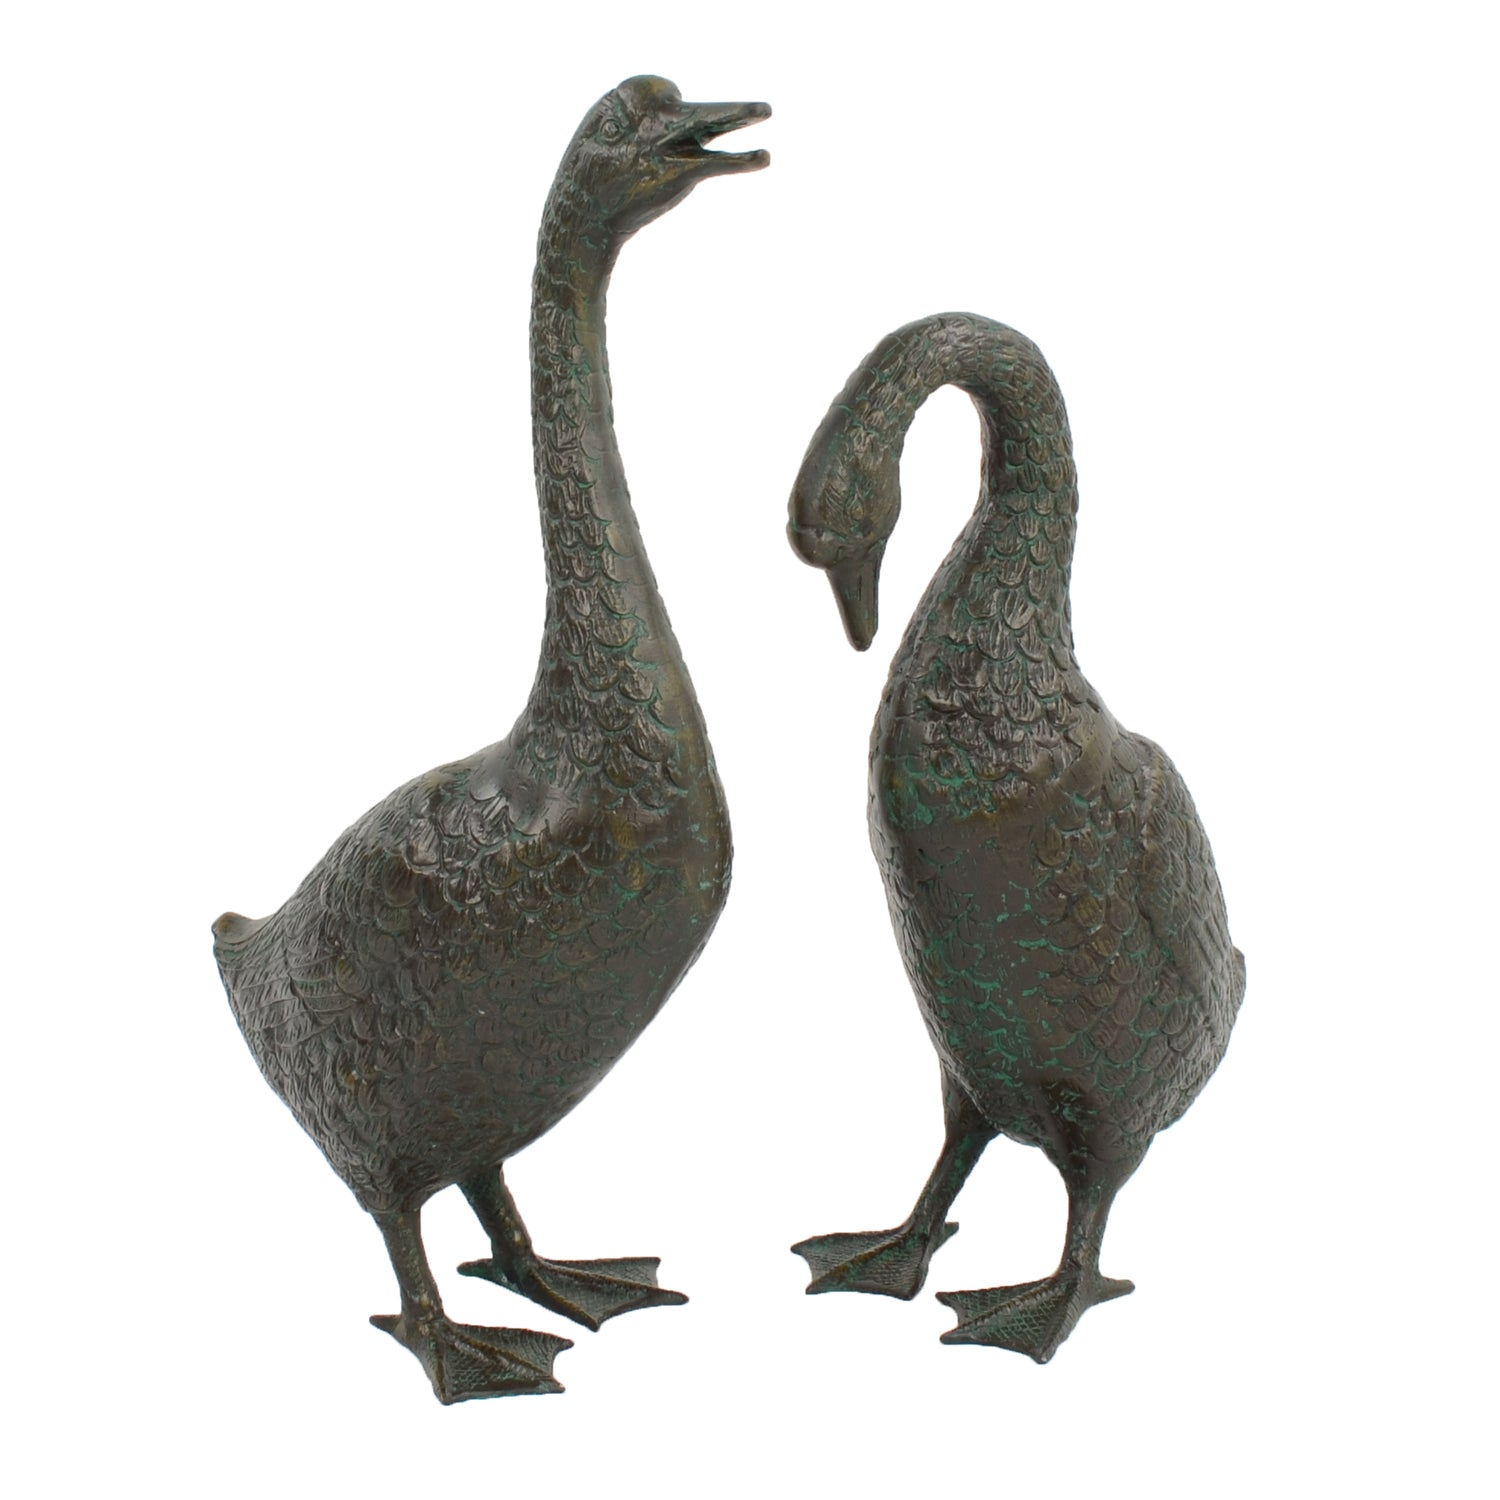 Solstice Sculptures Goose Low 55cm Aluminium Dark Verdigris - Ruby's Garden Boutique